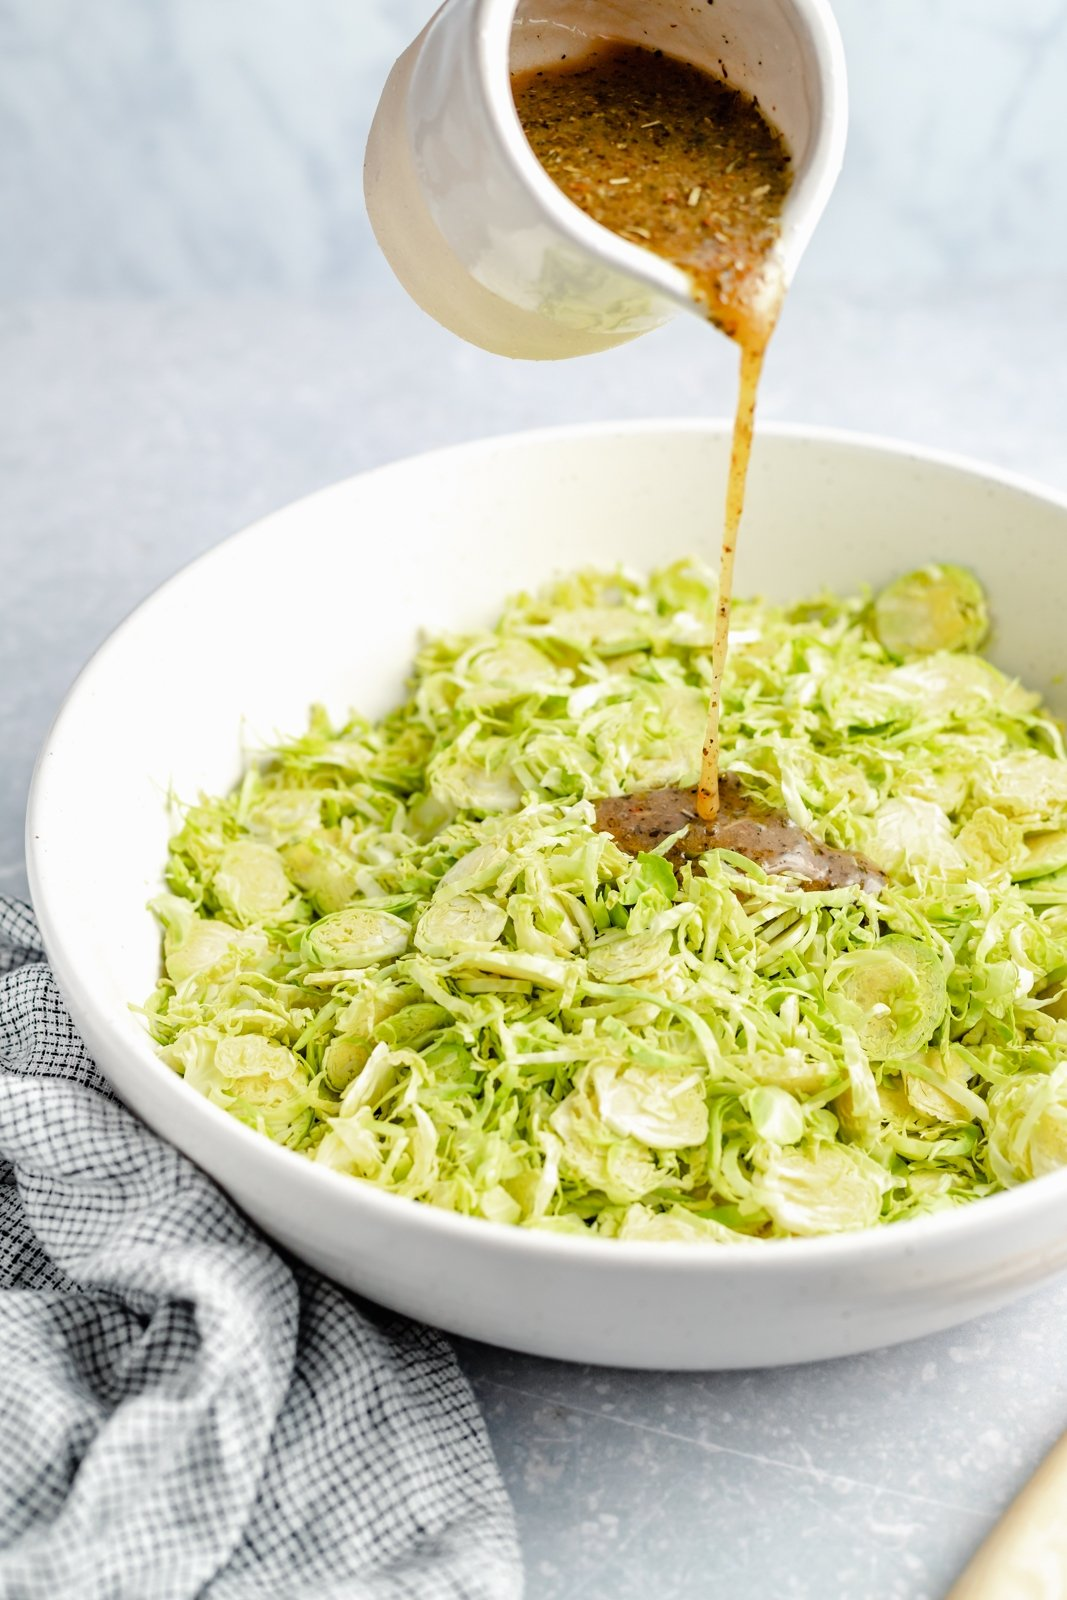 pouring italian dressing into a bowl of chopped brussels sprouts